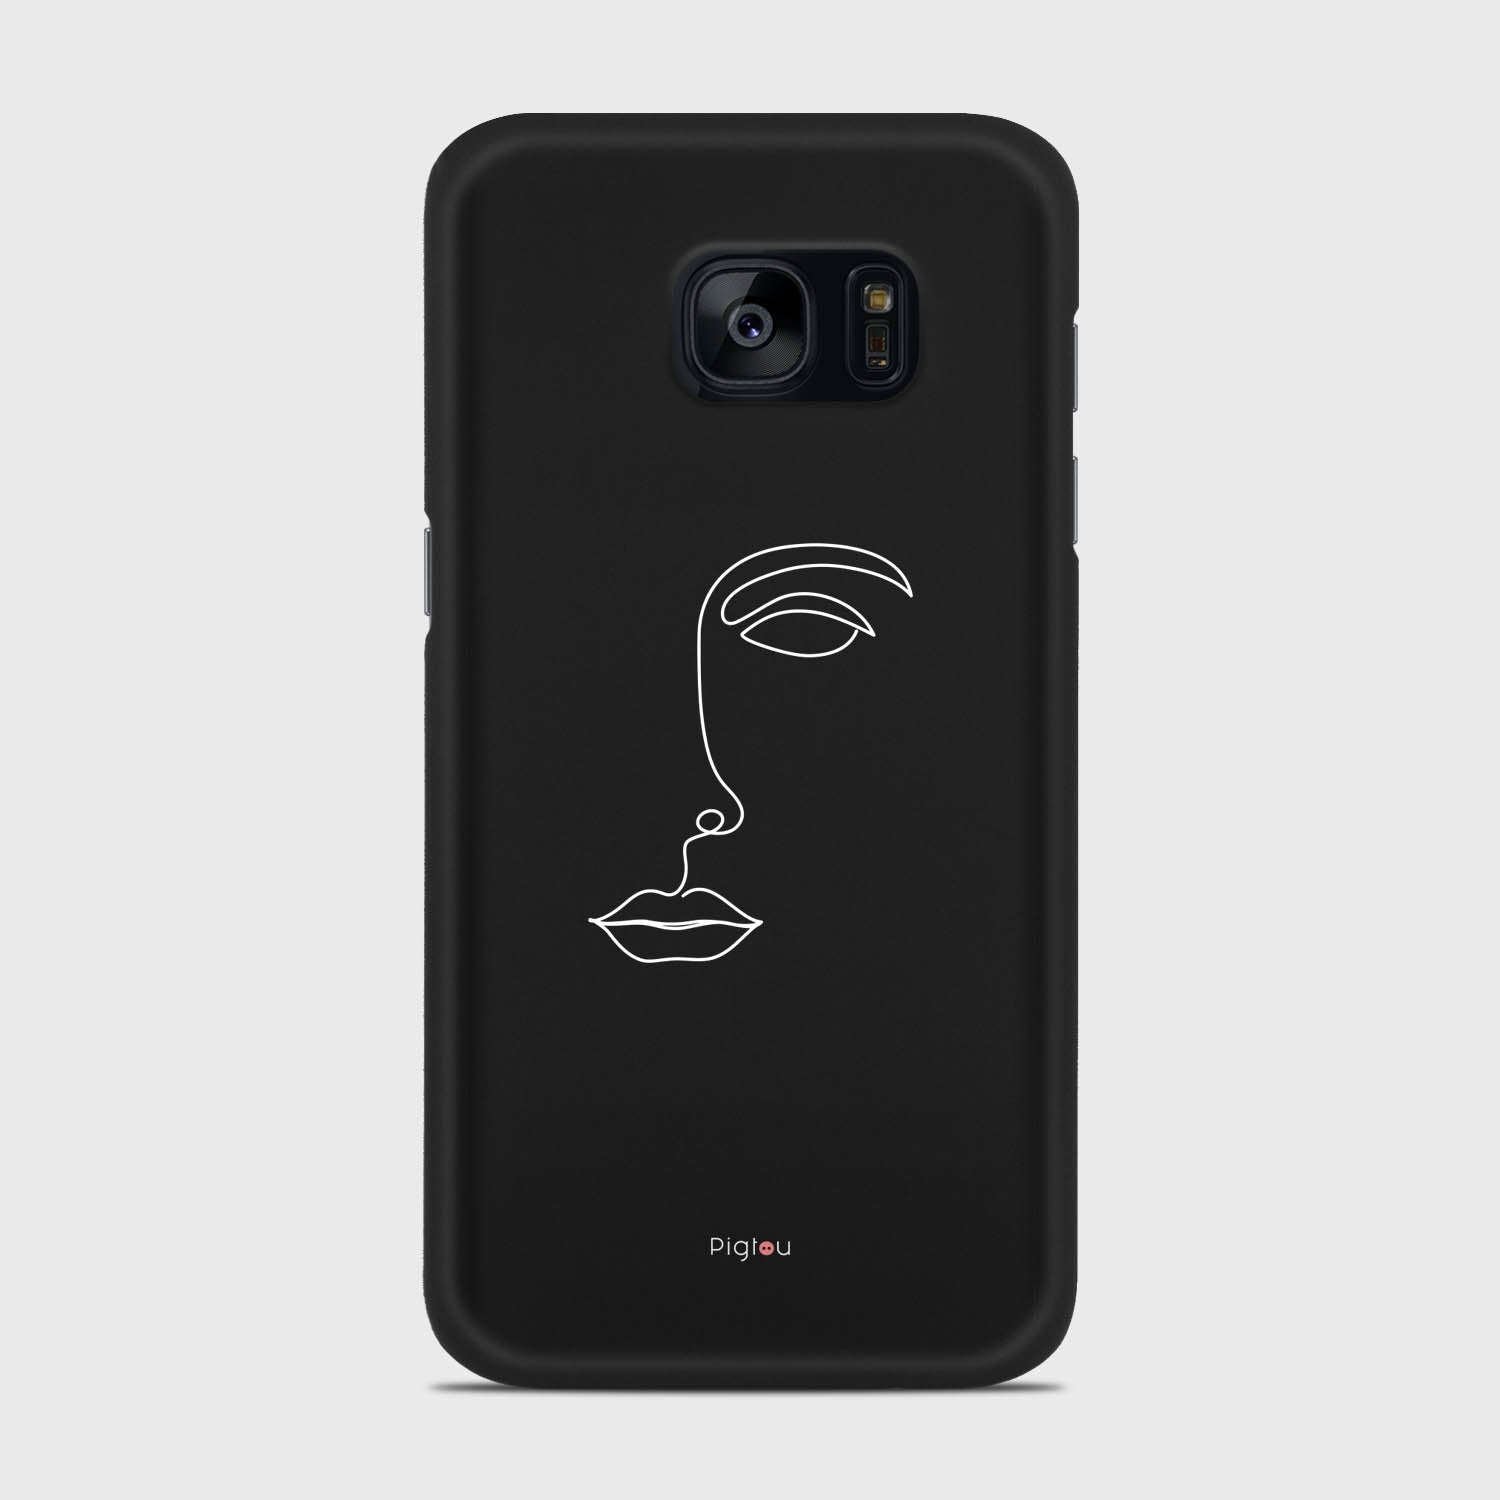 SILHOUETTE FACE Samsung Galaxy S7 cases | Pigtou